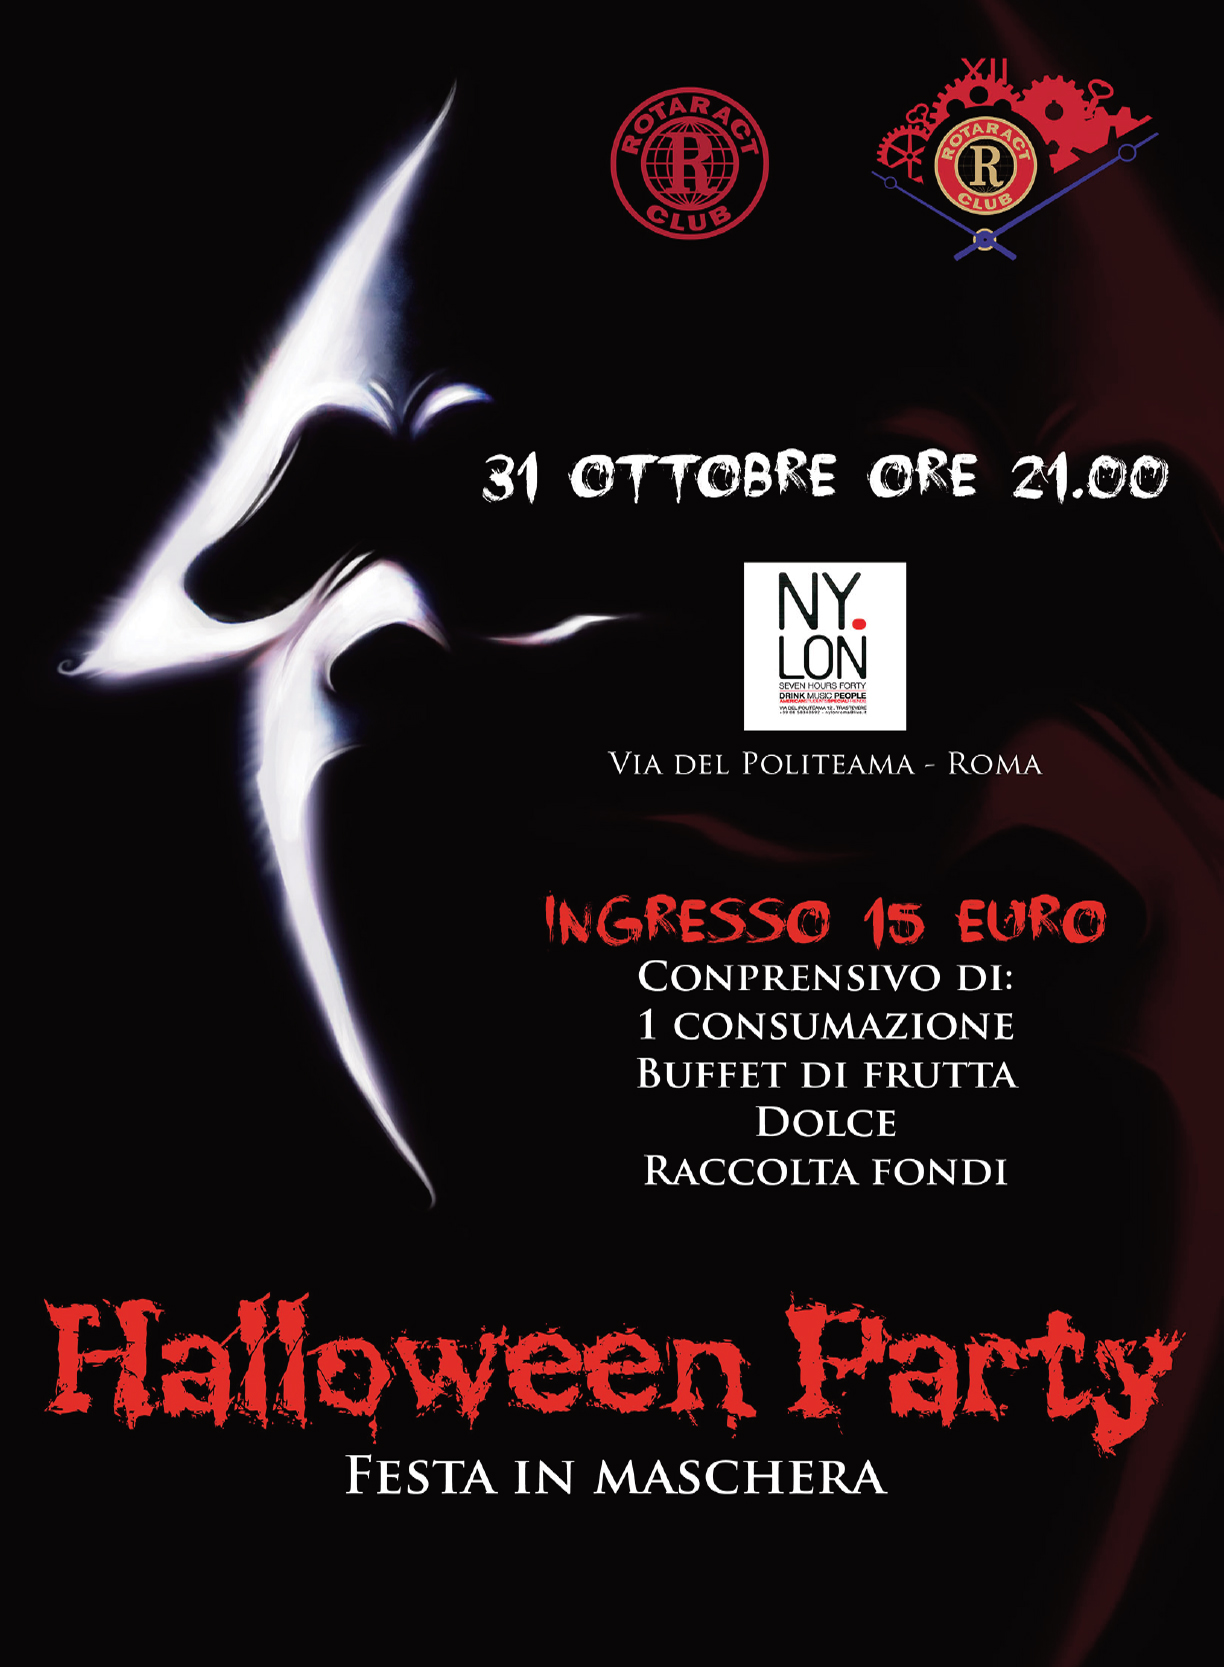 Rotary, rotaract, Halloween Party, festa in maschera, raccolta fondi, manifesto